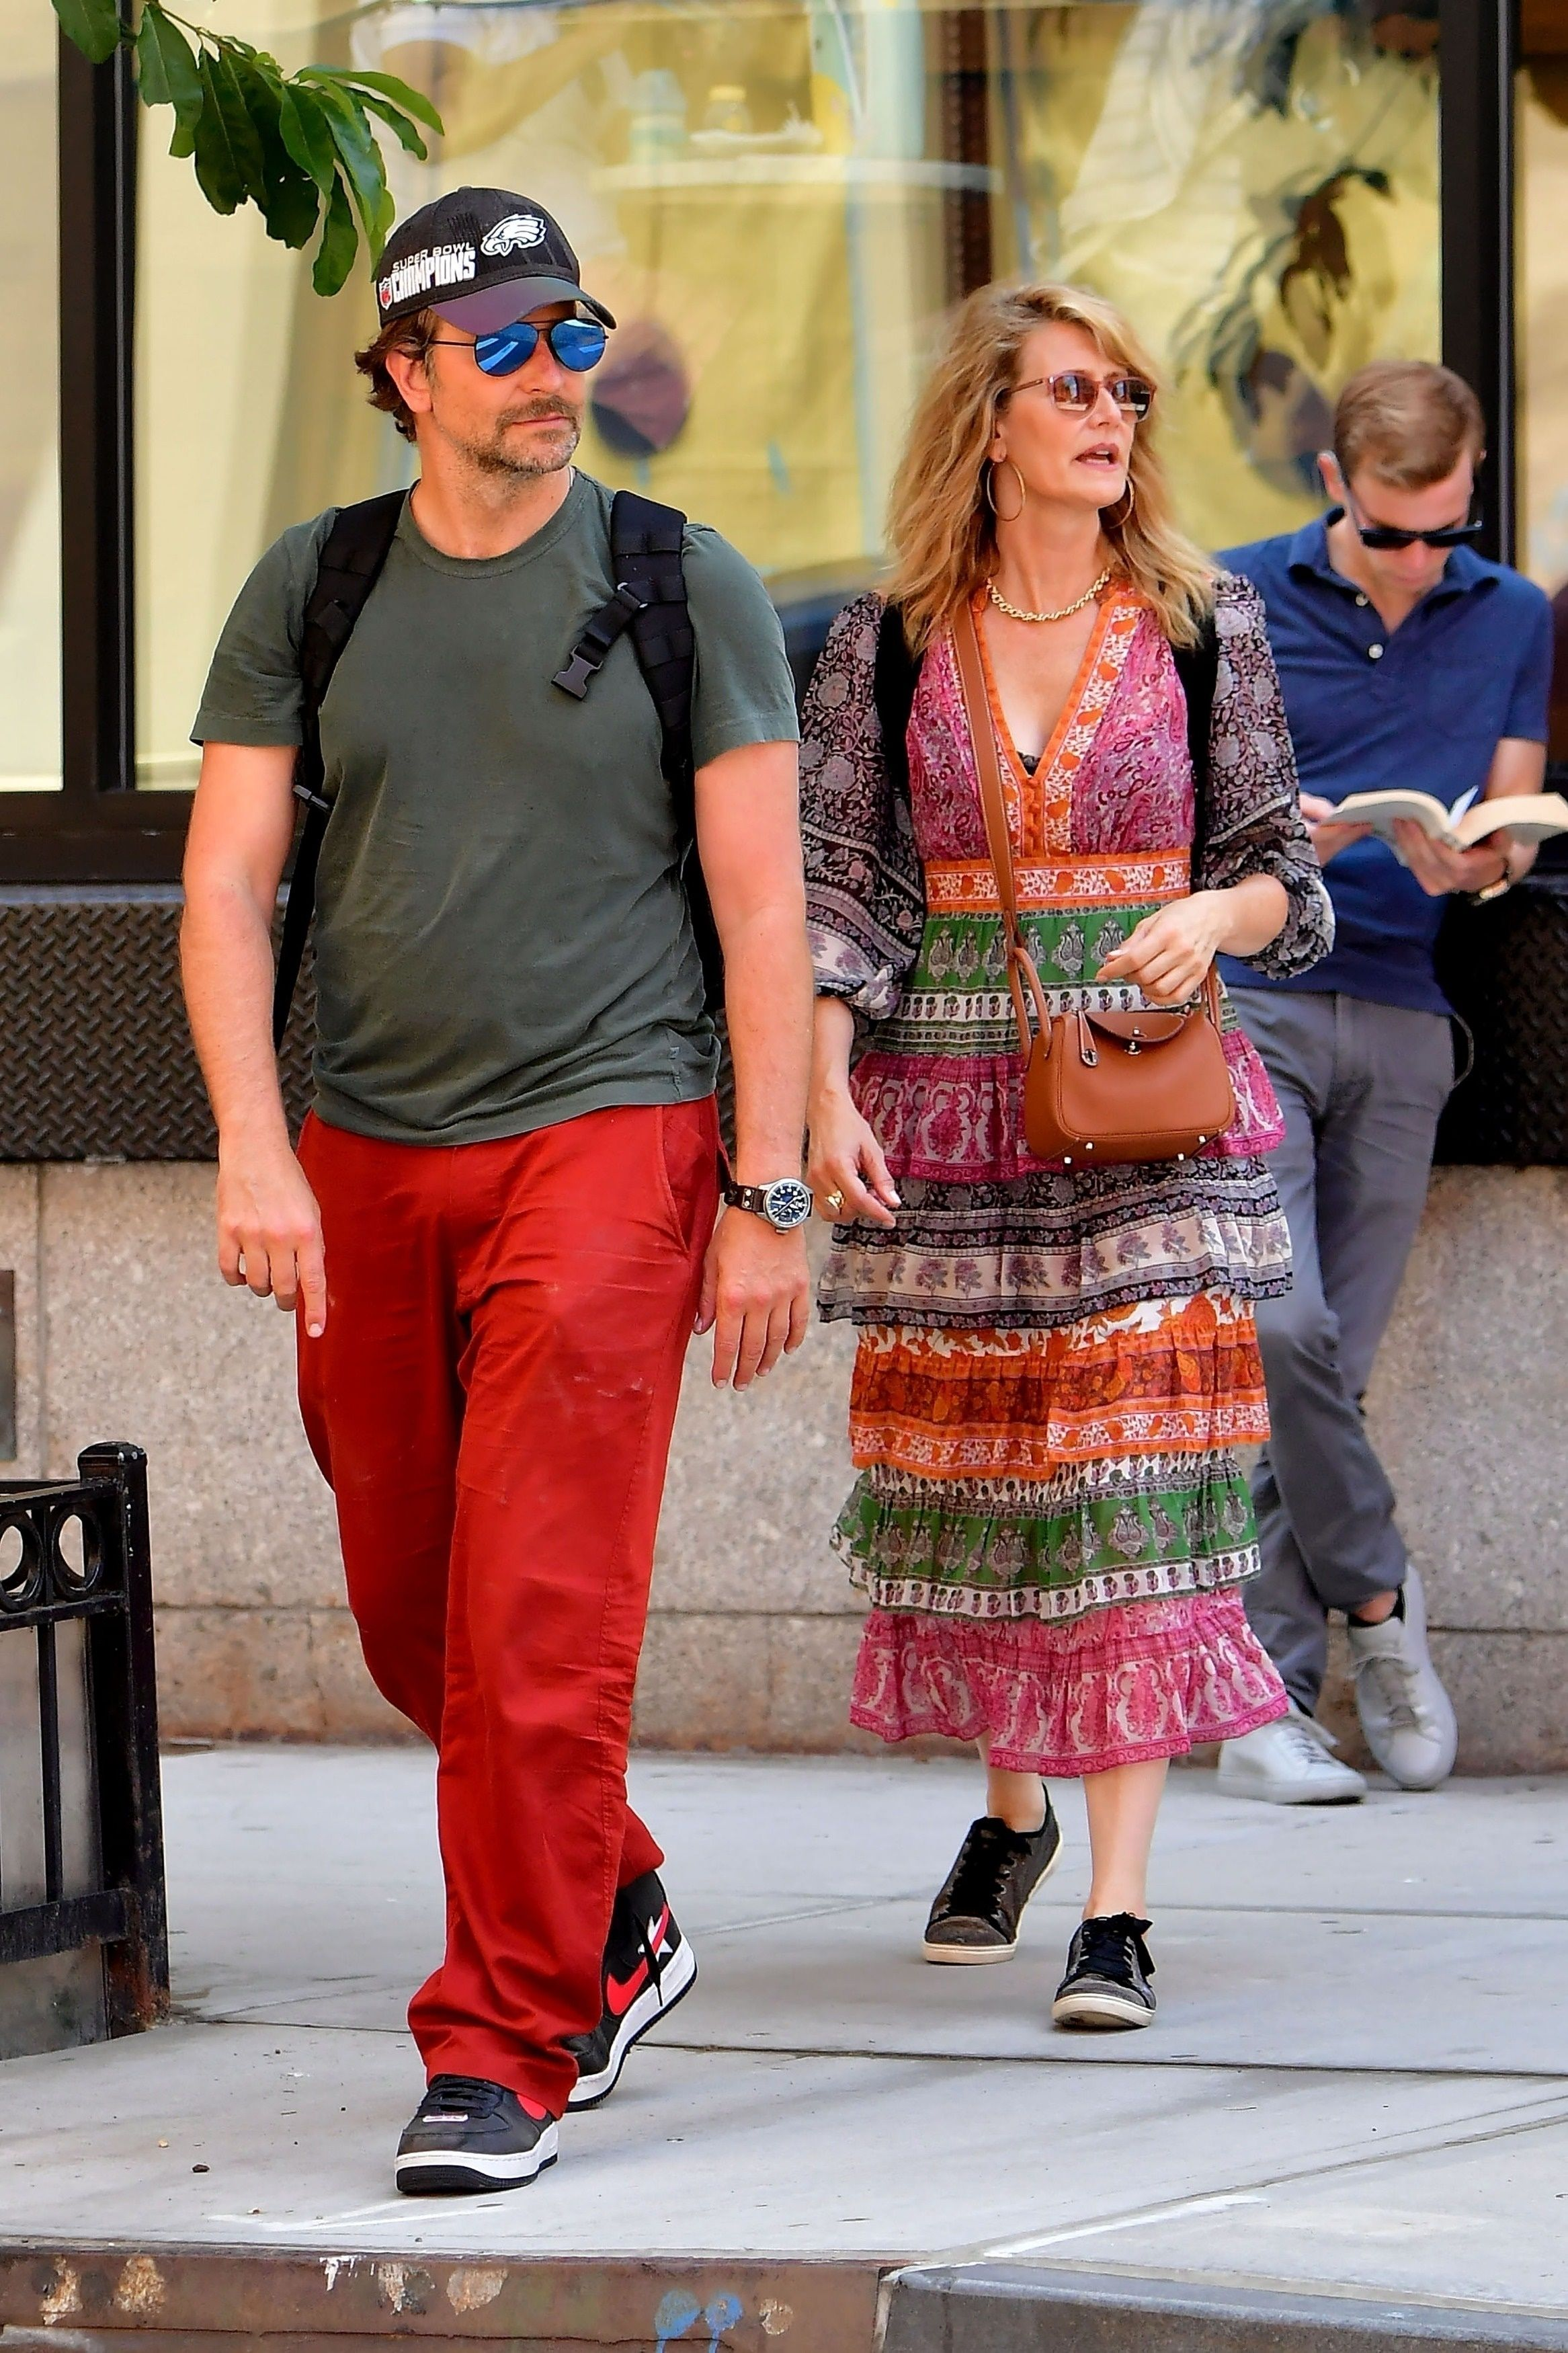 Bradley Cooper and Laura Dern Had a Weekend Hangout in New York City